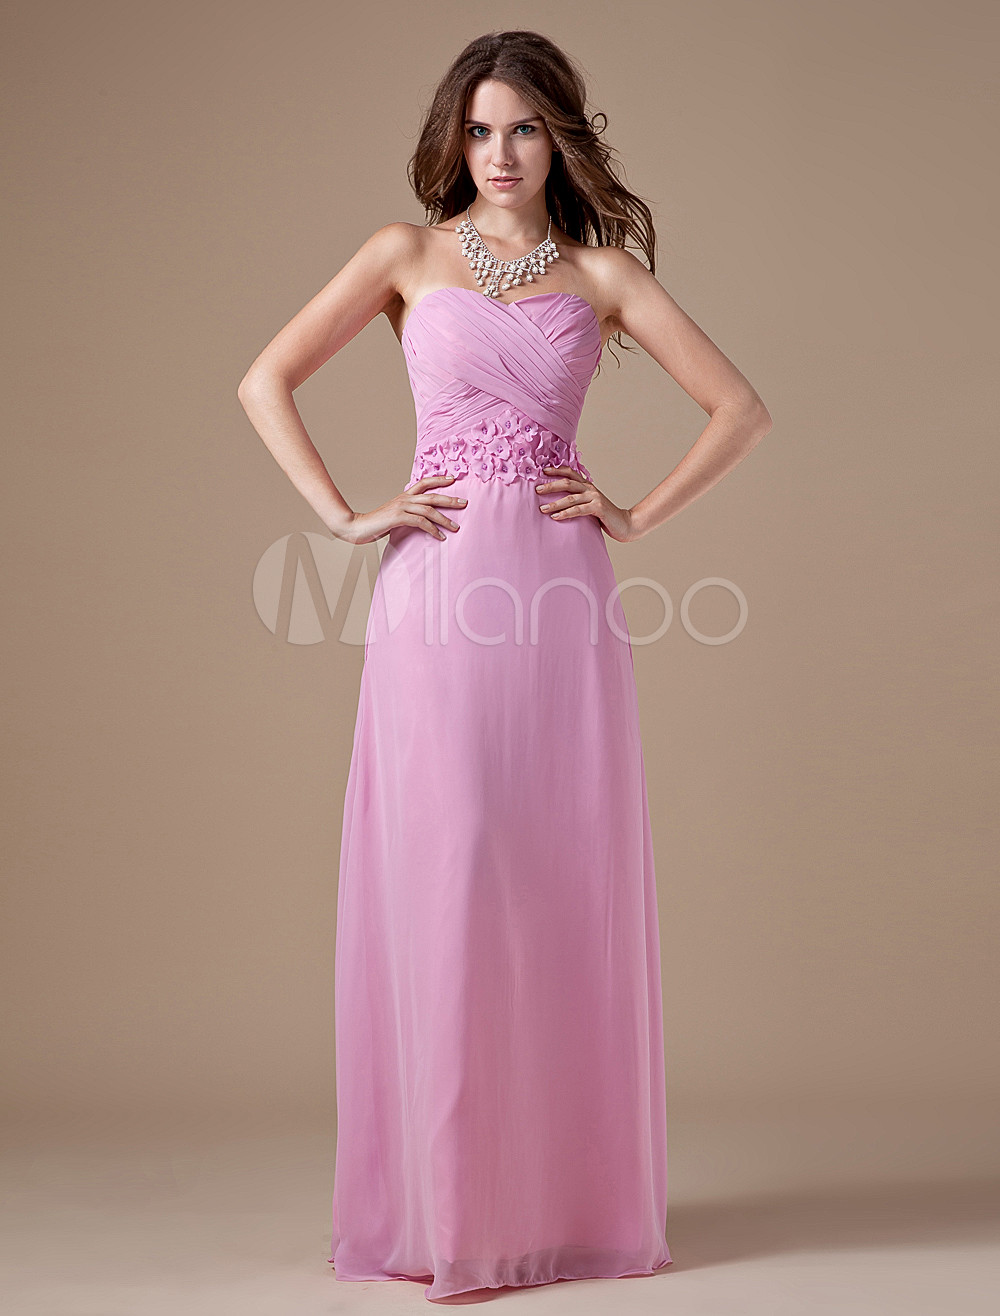 Pink Chiffon Beading Sweetheart Neck Wedding Bridesmaid Dress